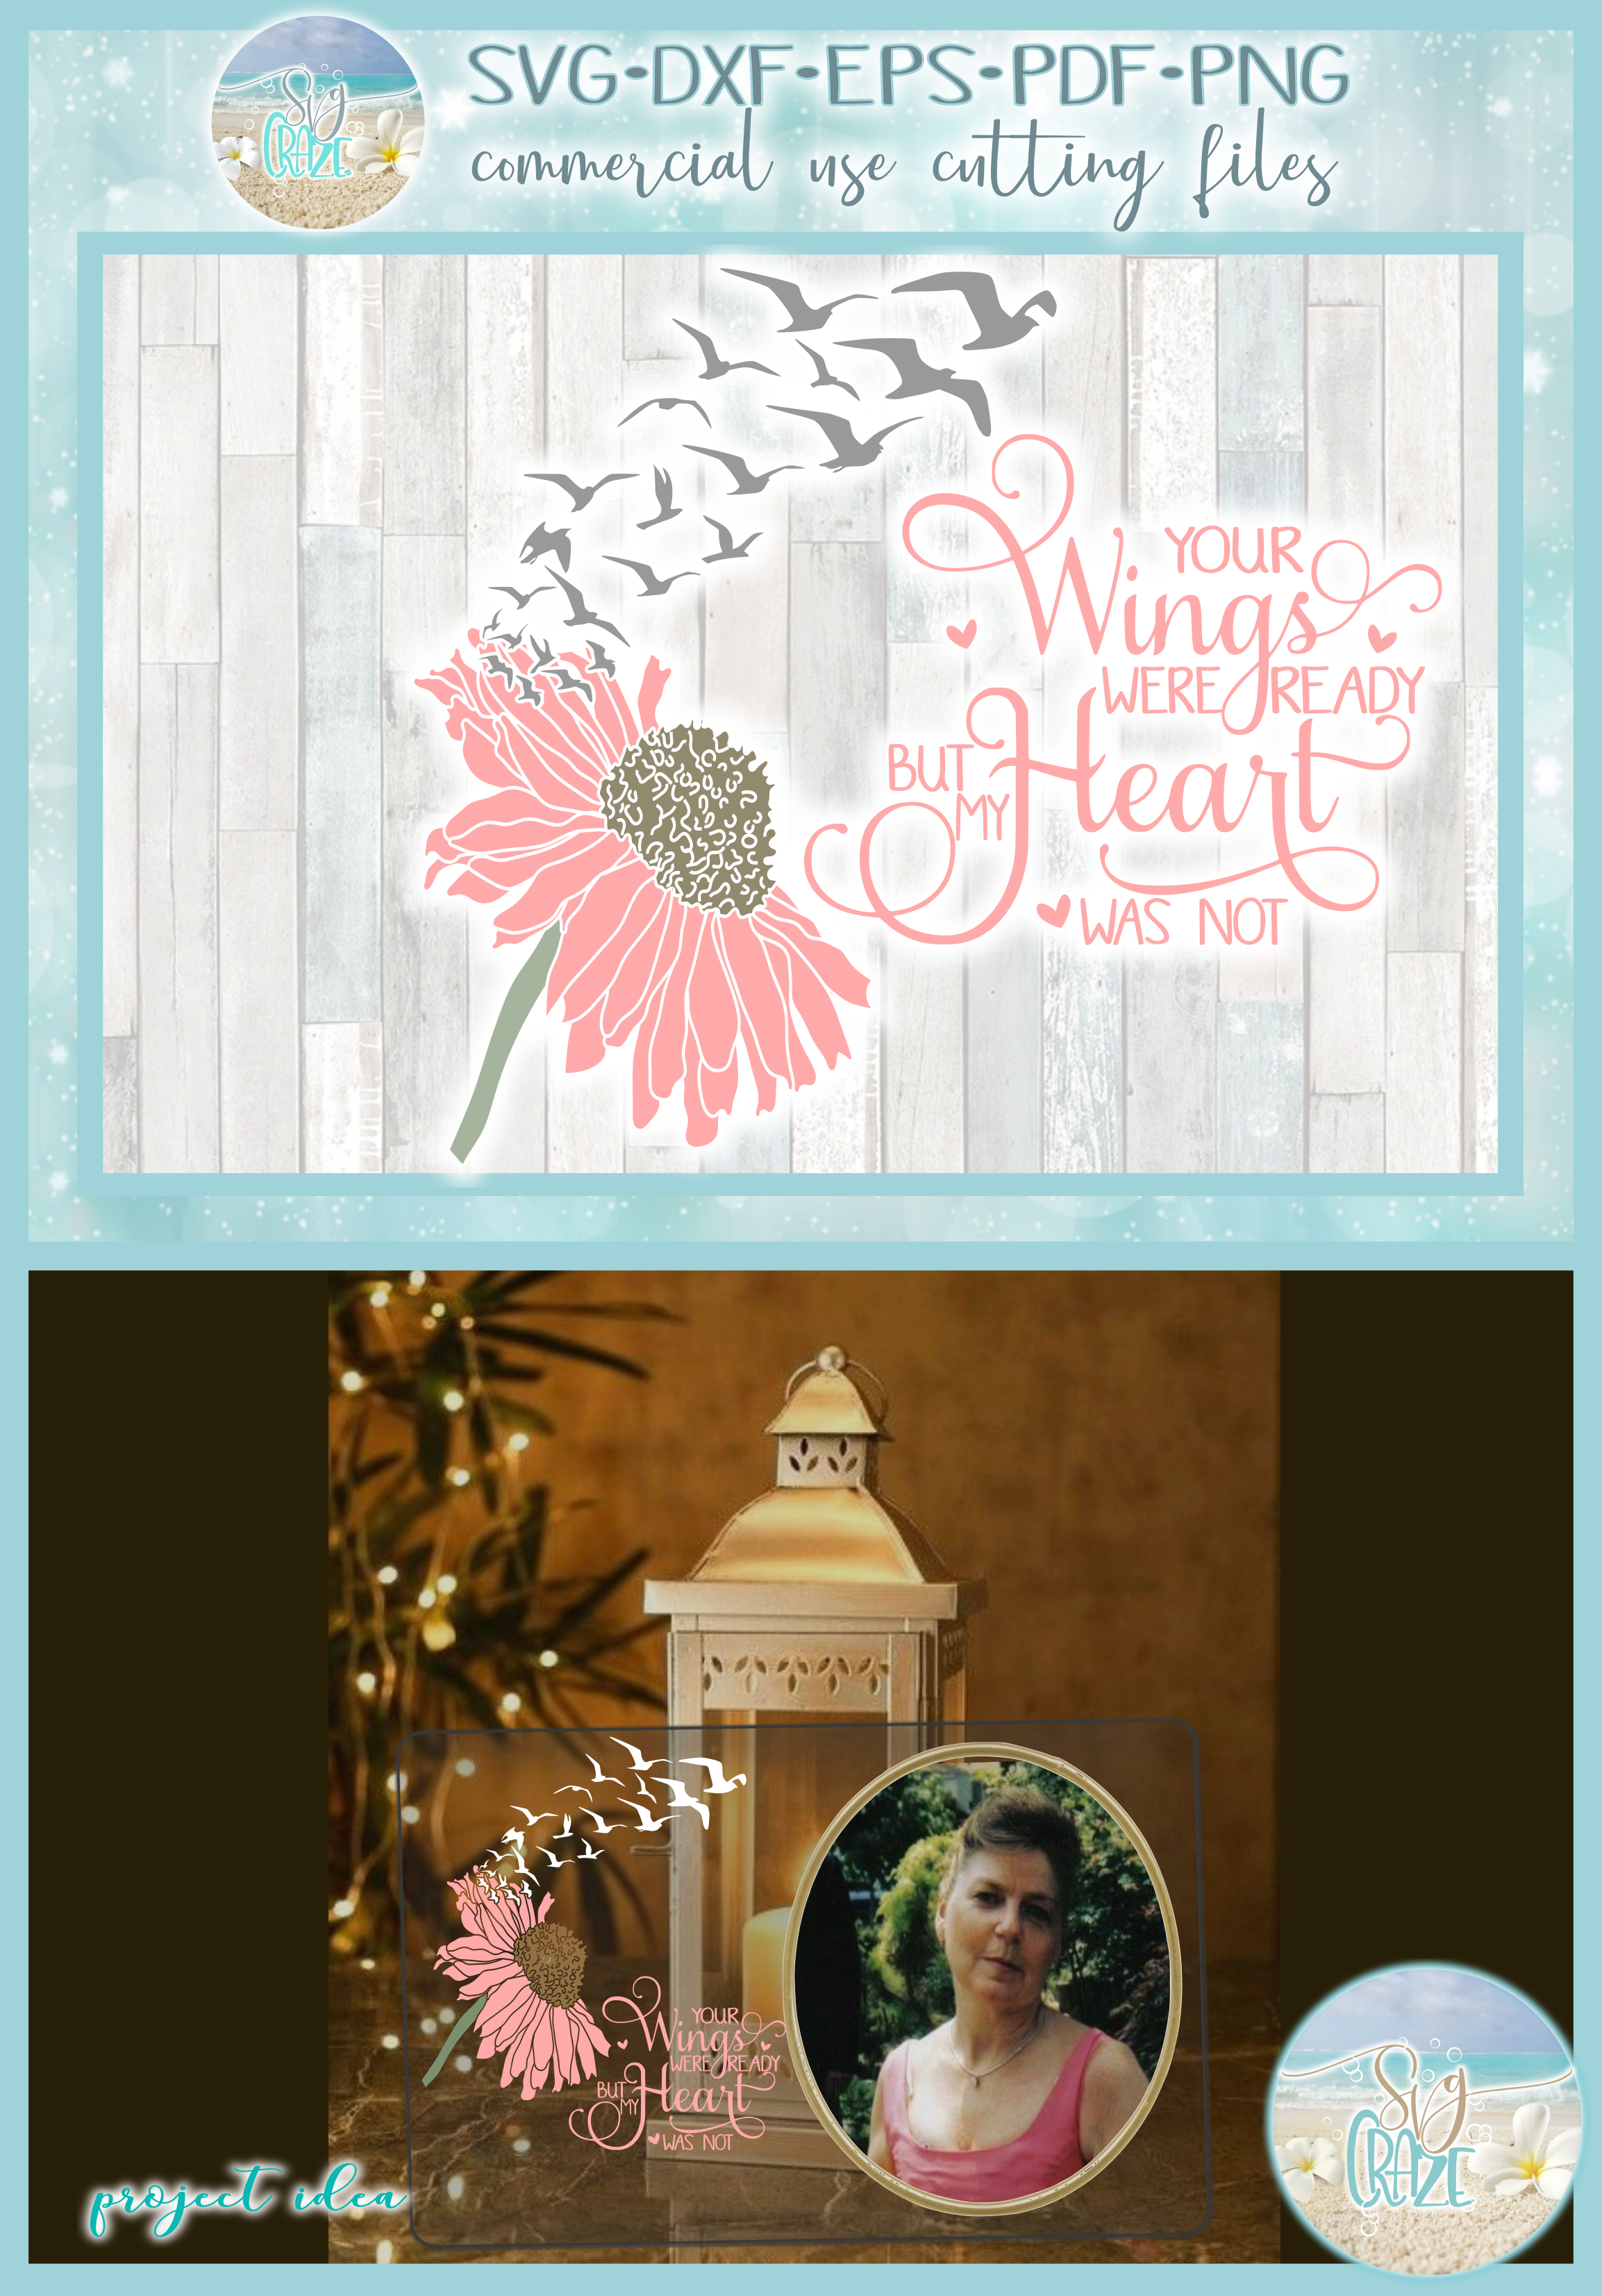 Your Wings Were Ready But My Heart Was Not with Daisy SVG example image 4